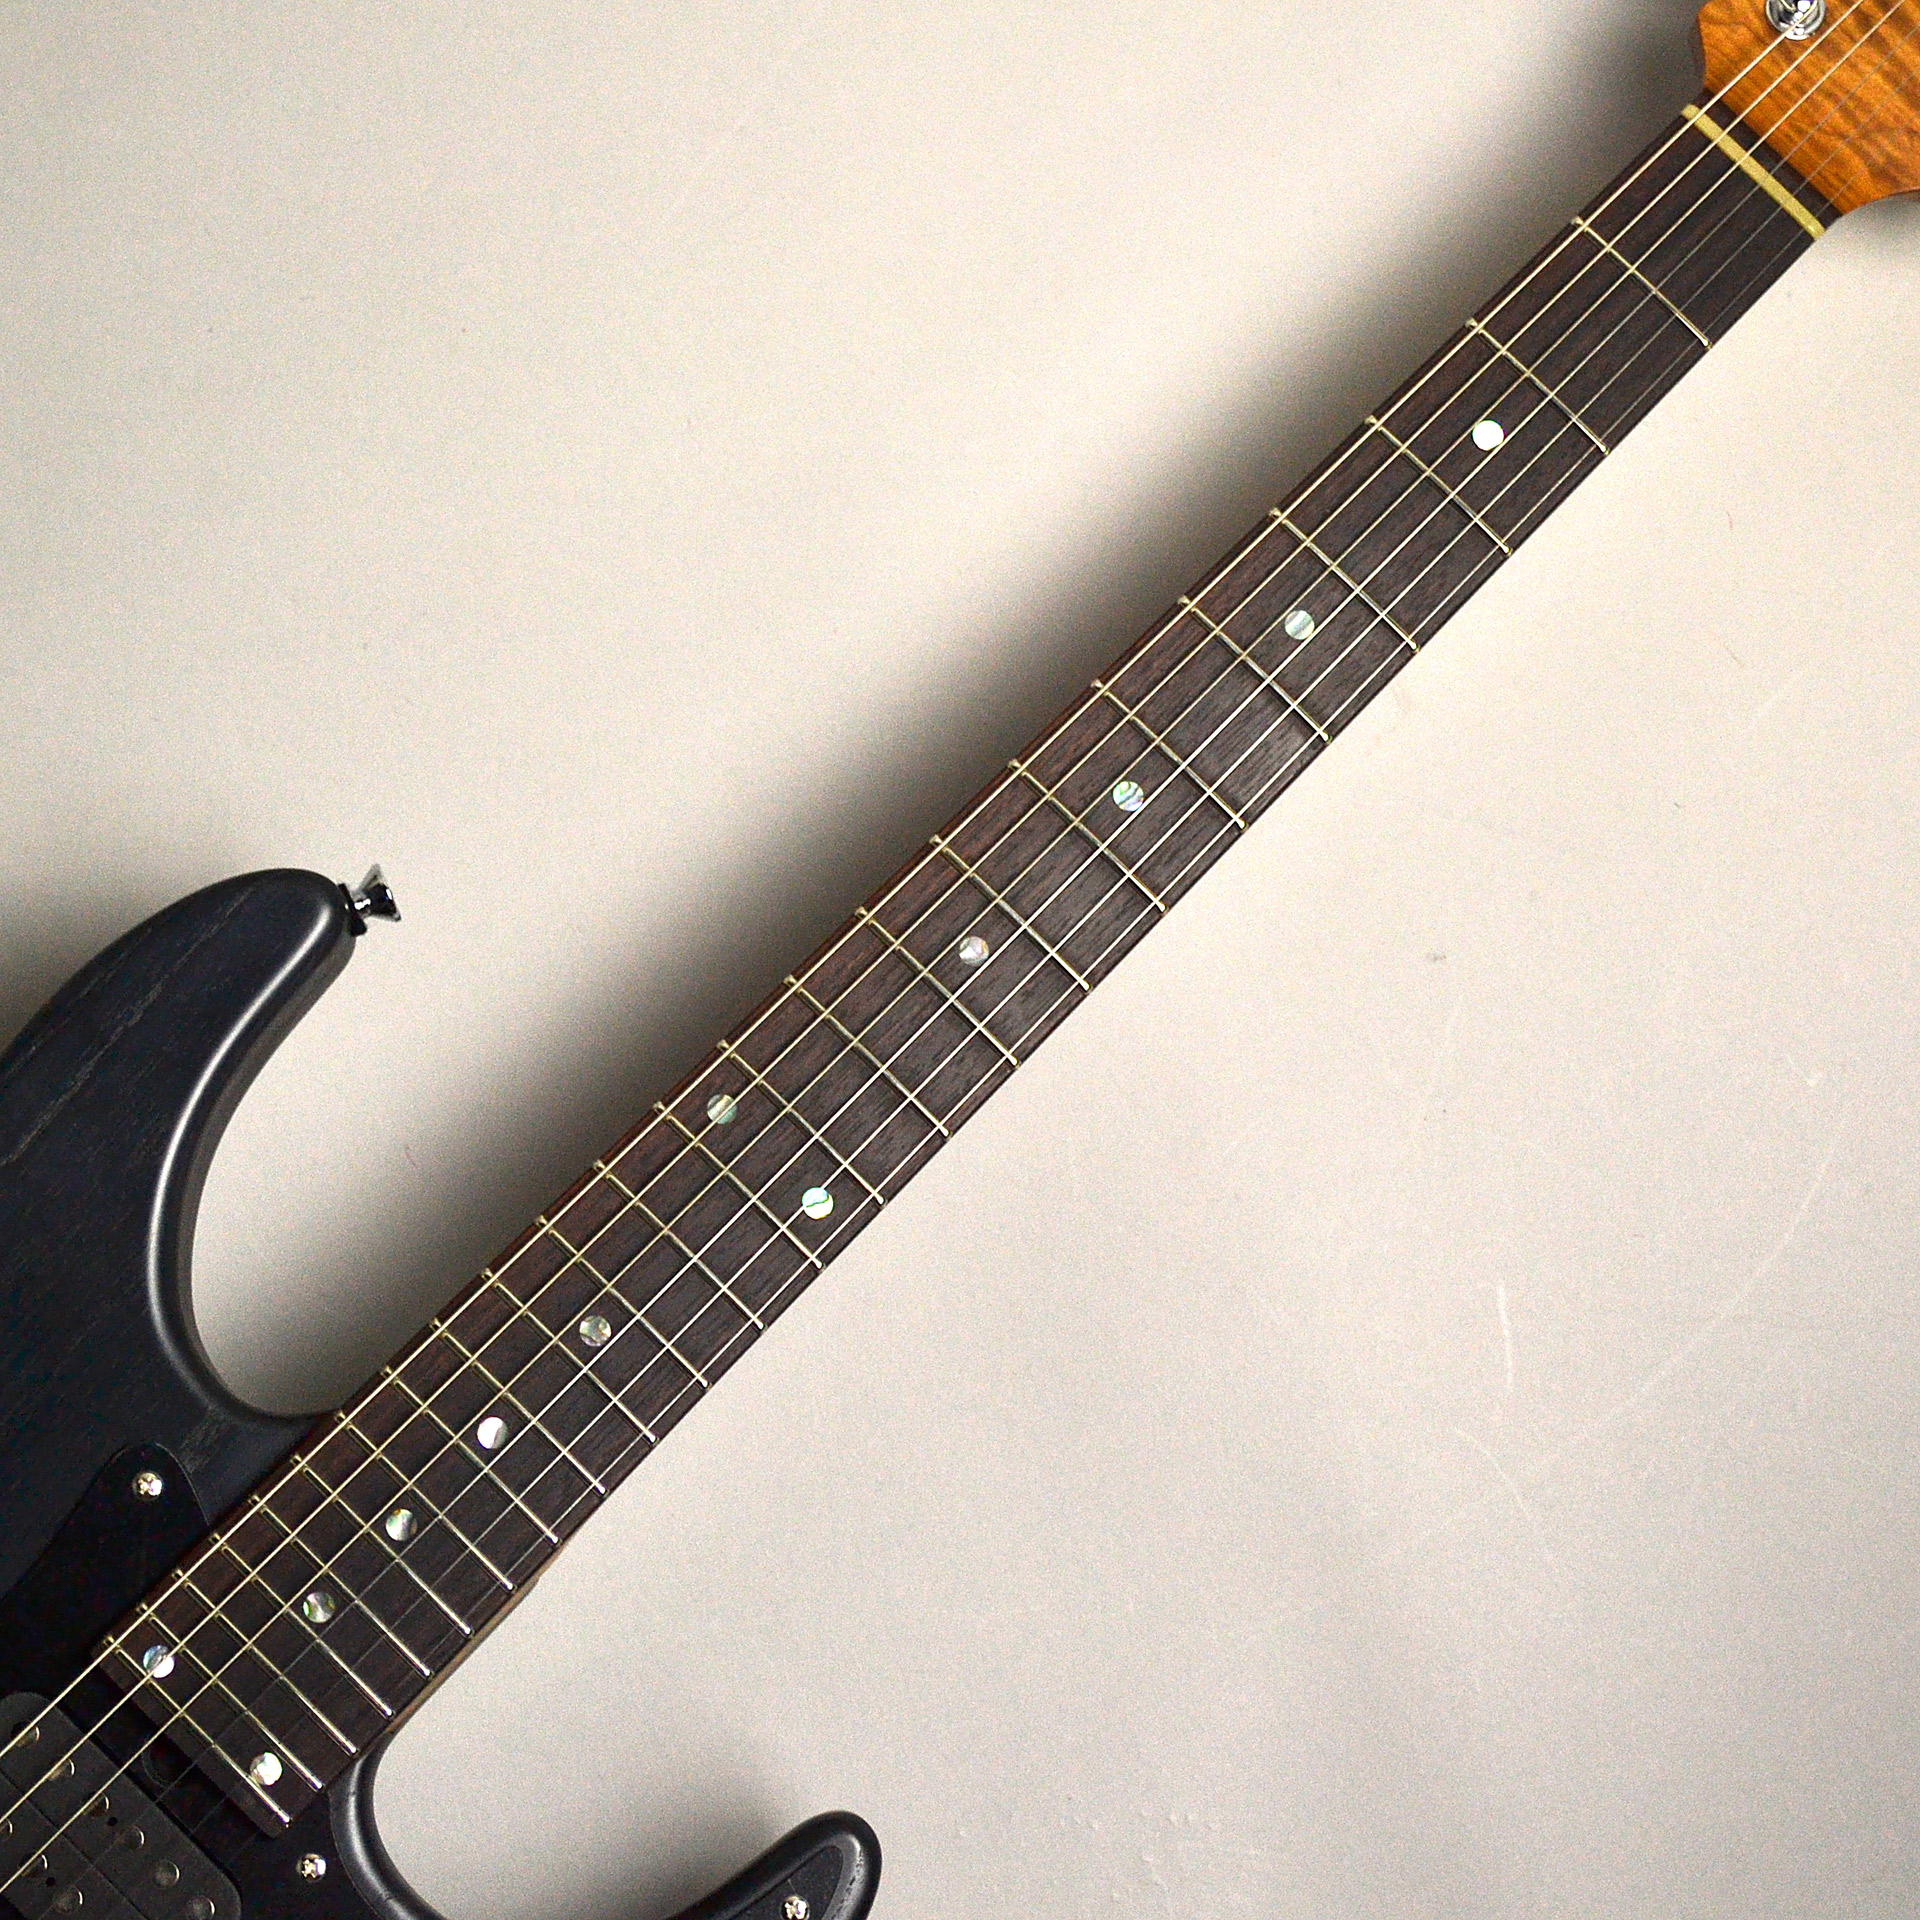 DST24 Solid AShの指板画像